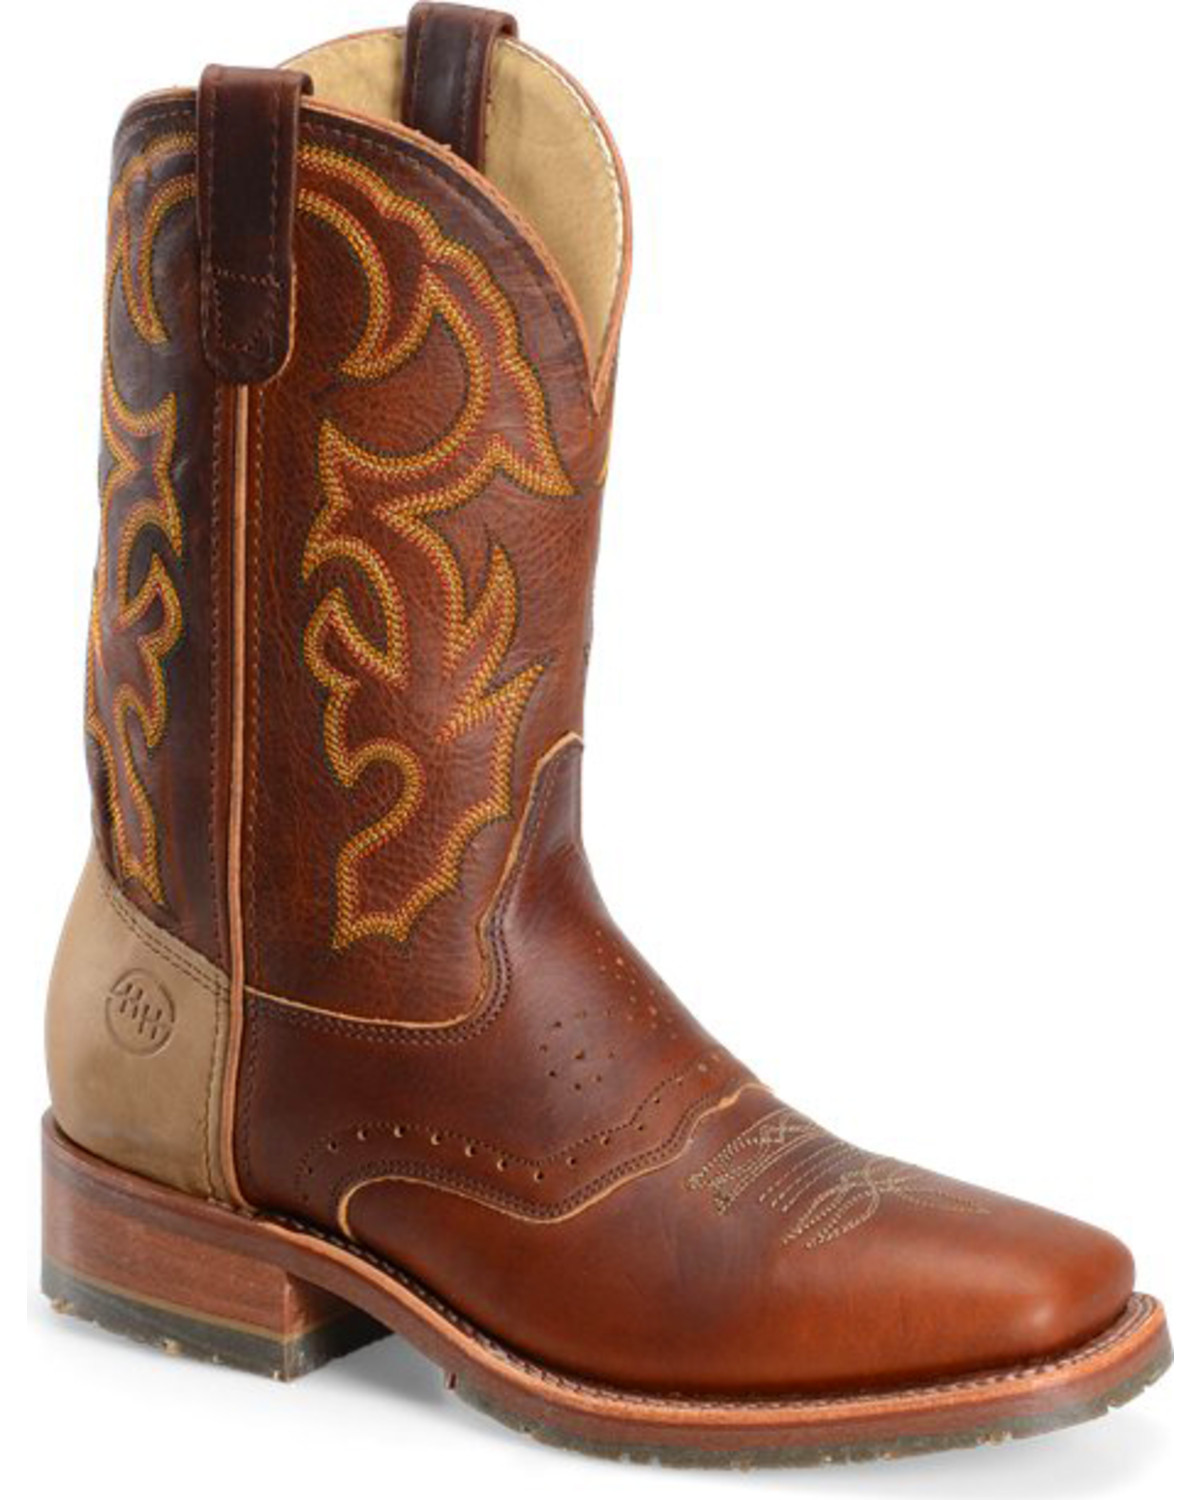 60358b72b32 Double-H Boots Men's Snakebite Saddlevamp Western Boots